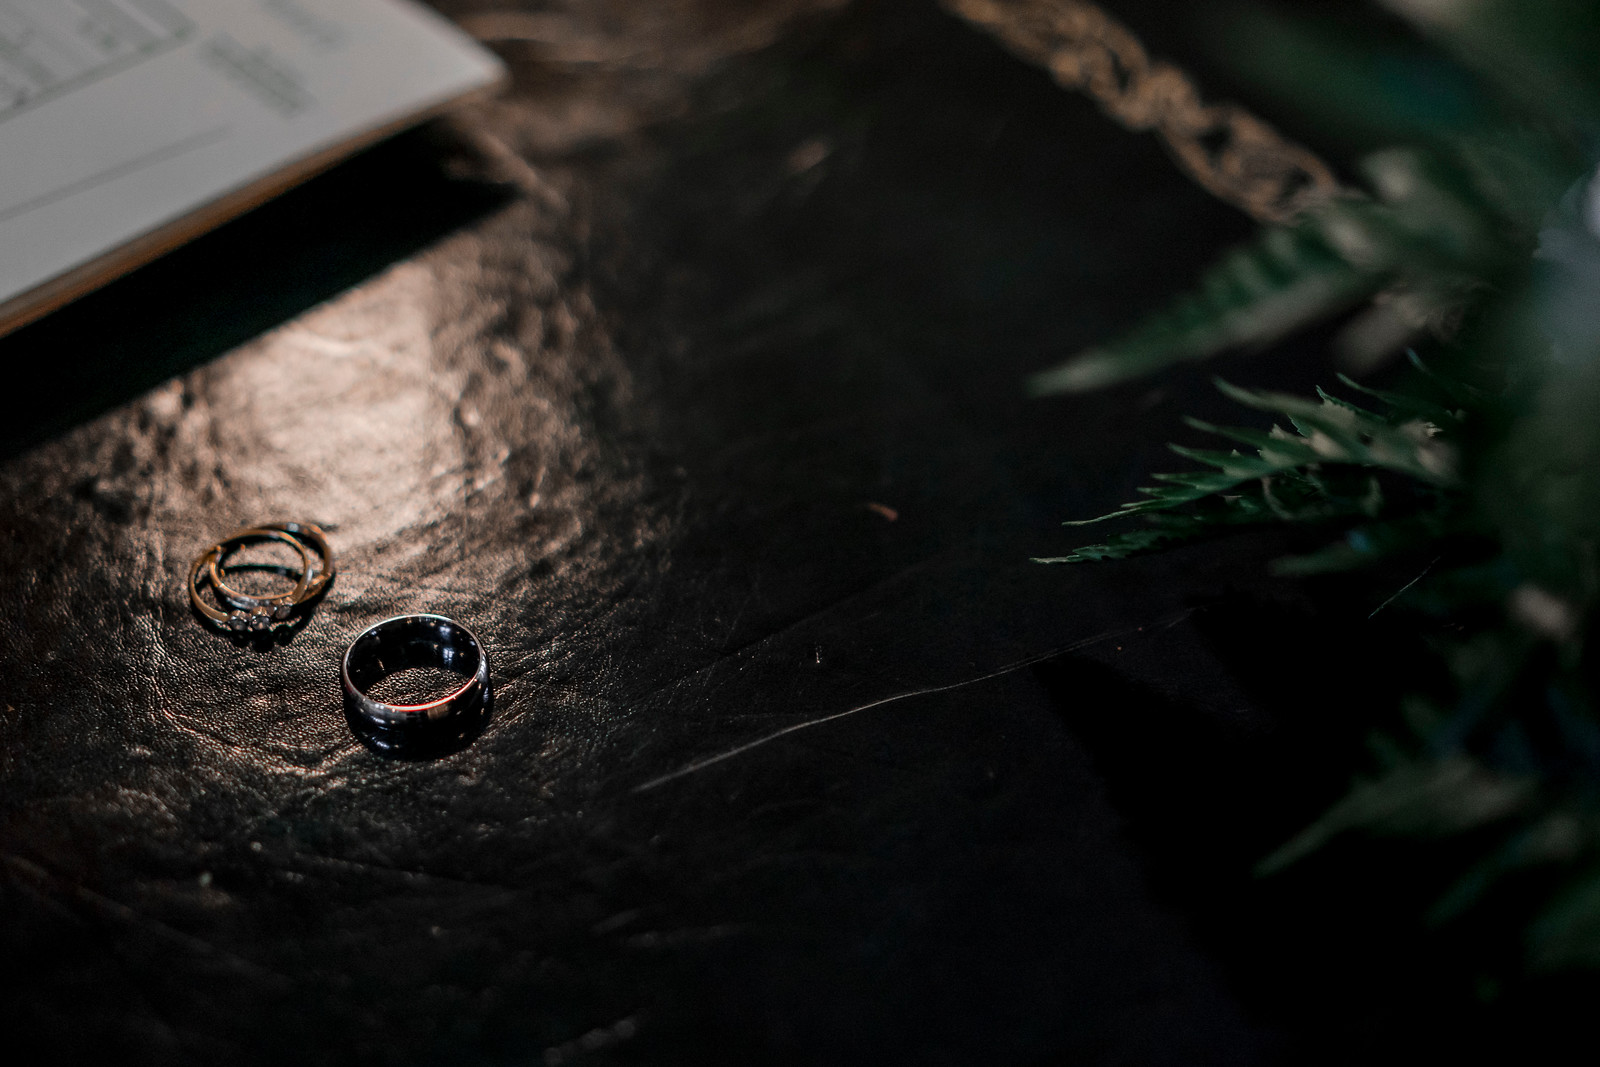 Unique photo of the bride and grooms wedding rings